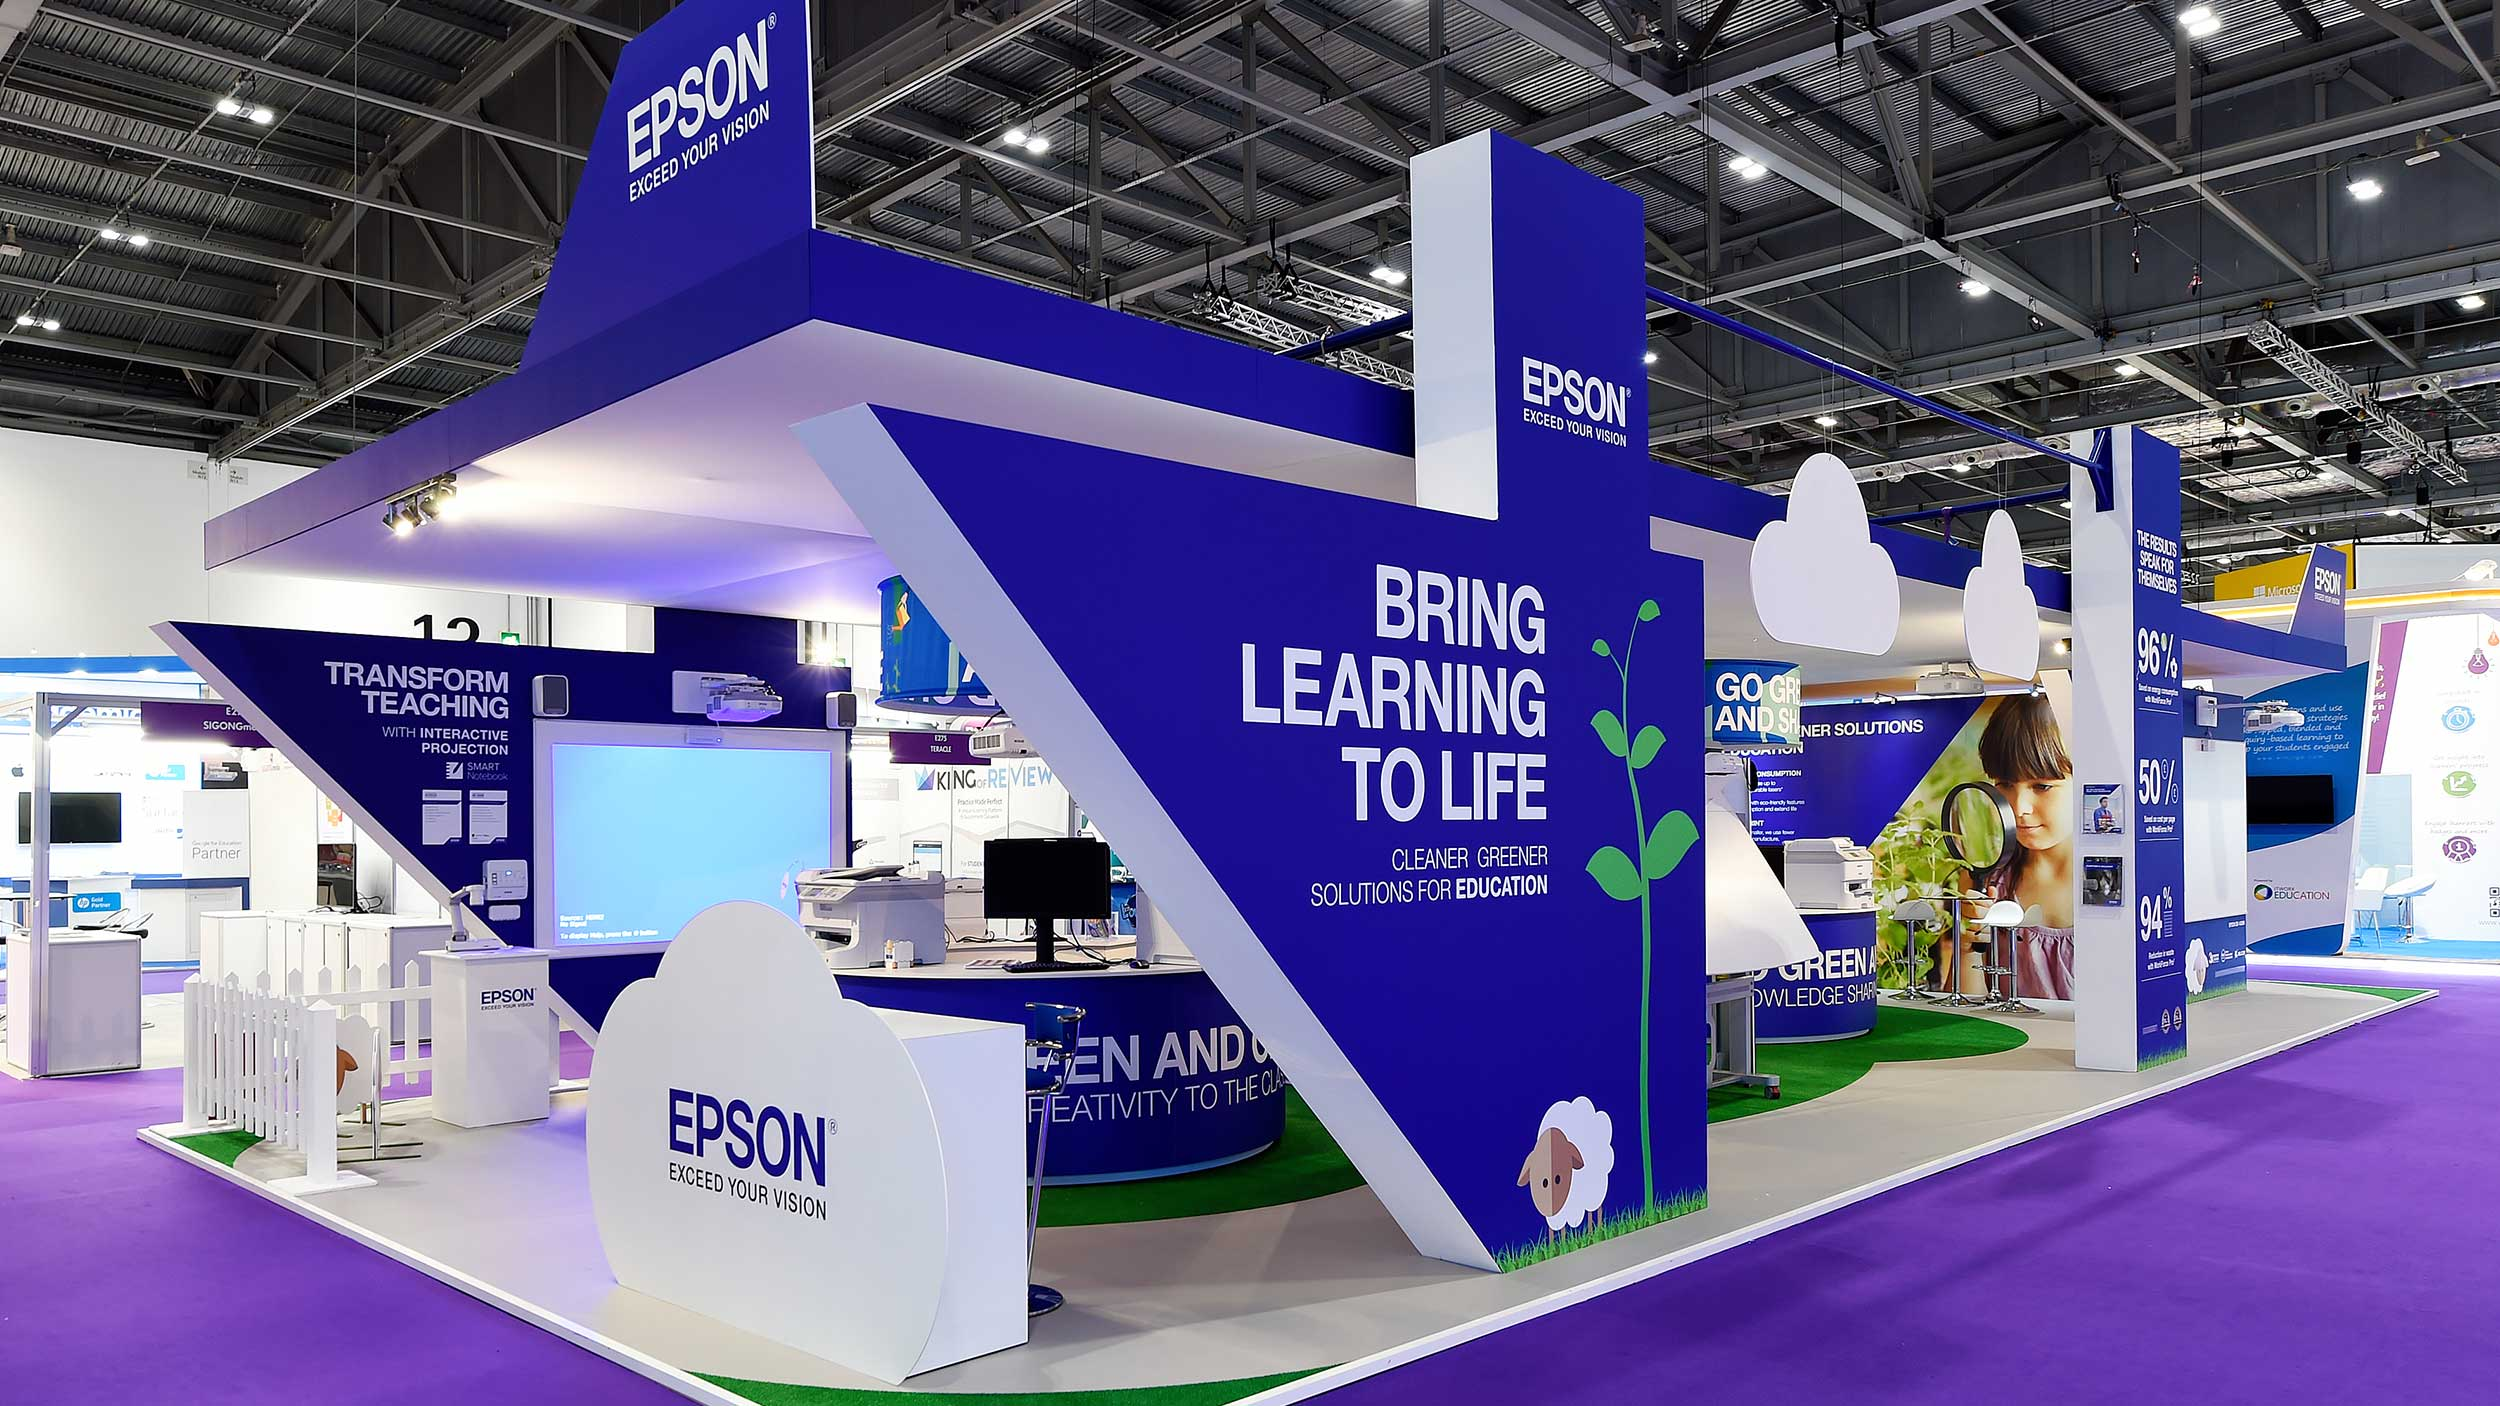 Bett Exhibition Stand Of The Year : Epson bett education show bespoke stand in events